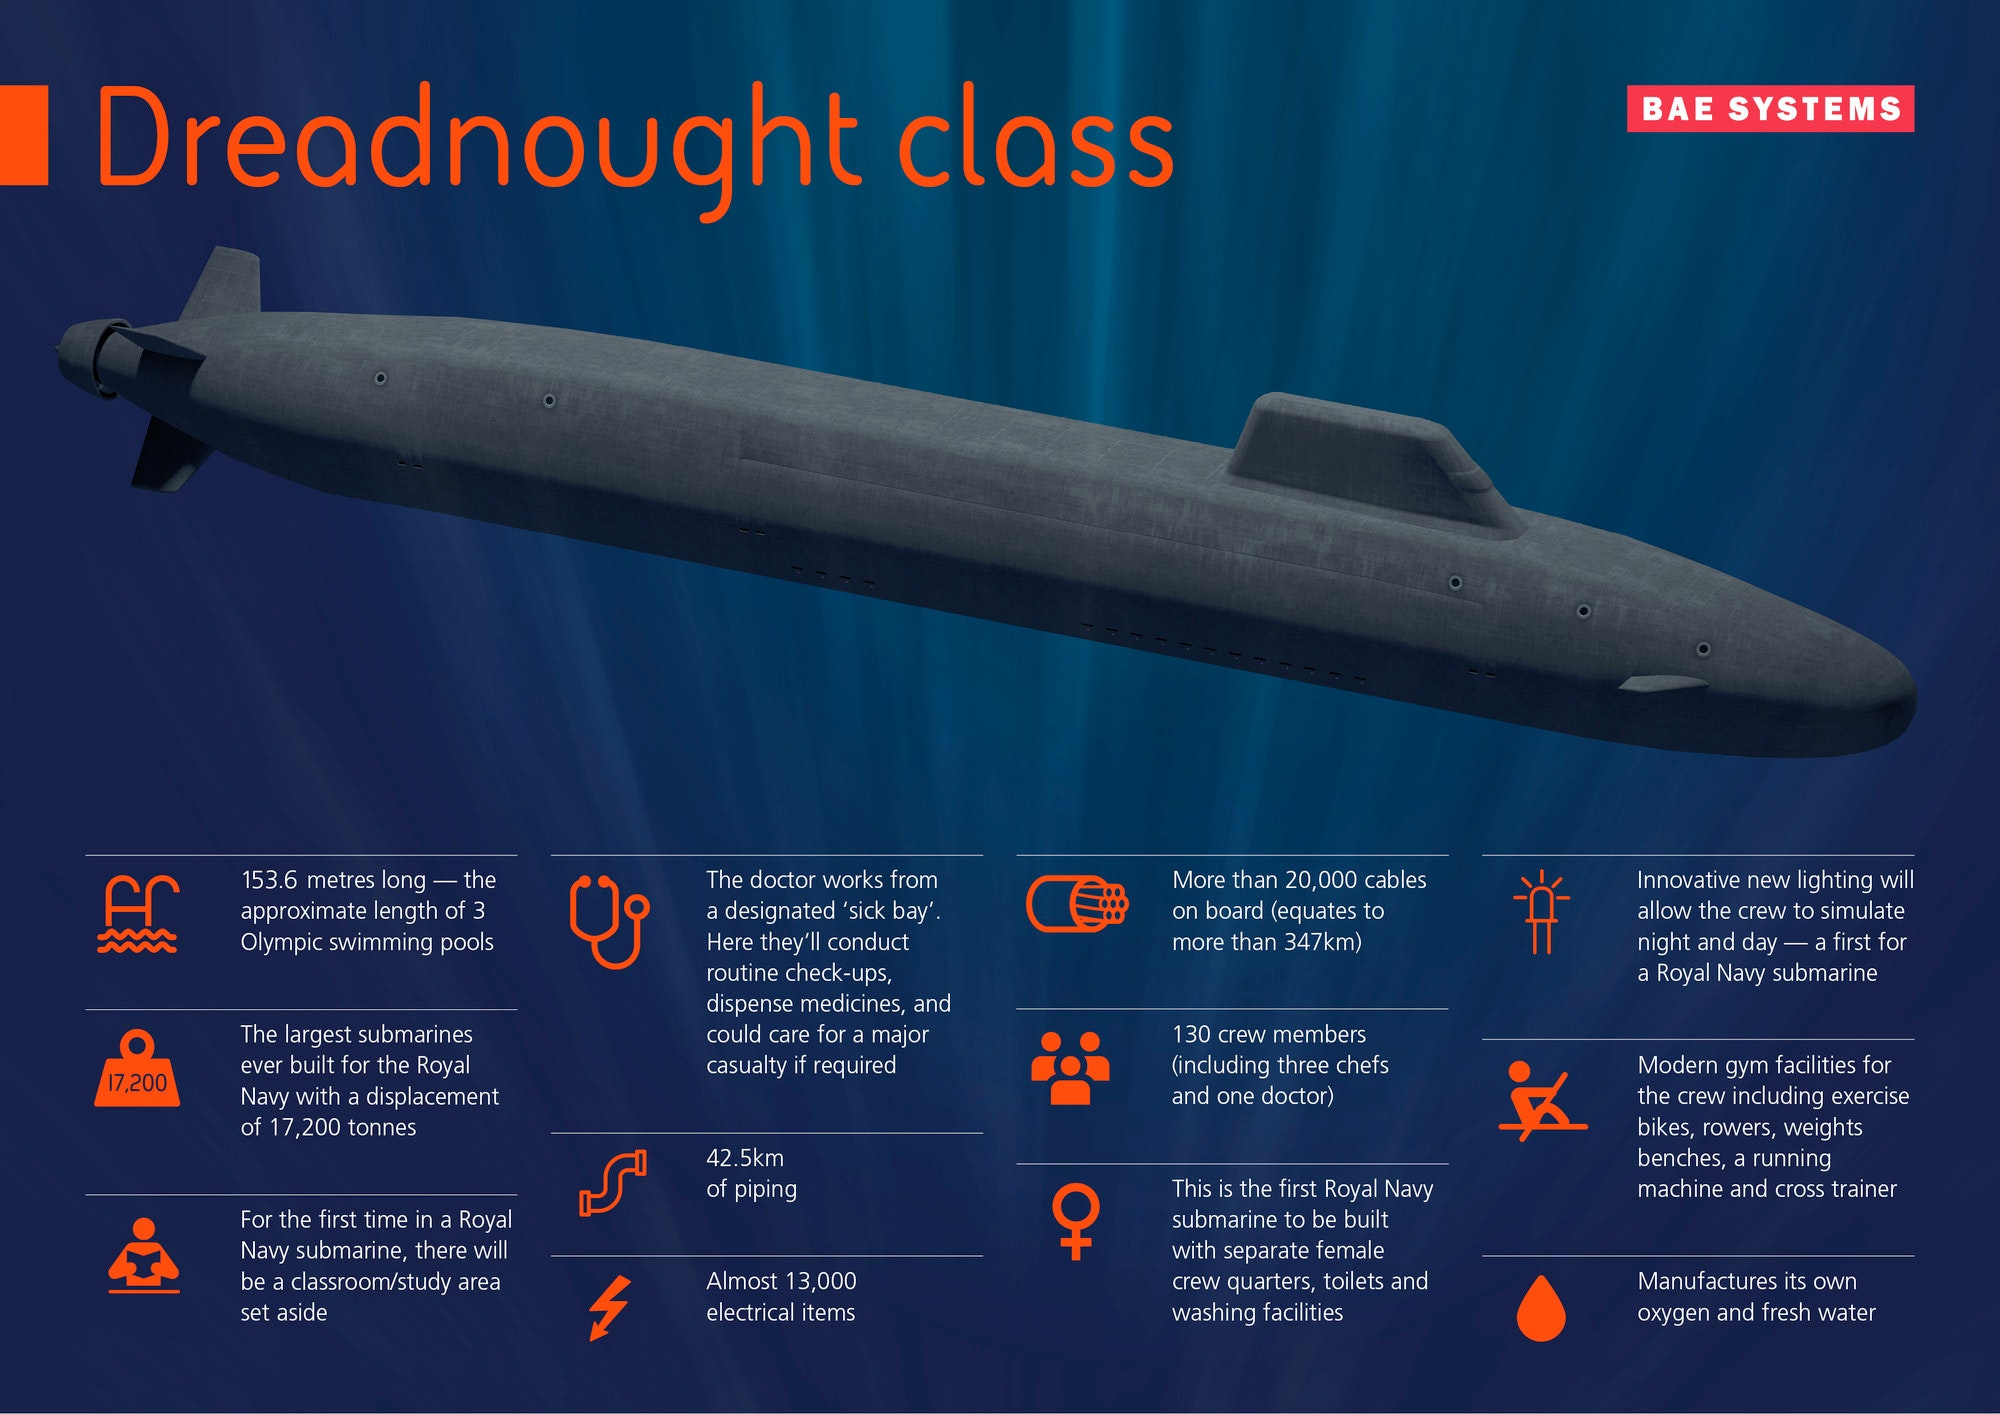 New nuclear missile submarine to be named HMS Warspite